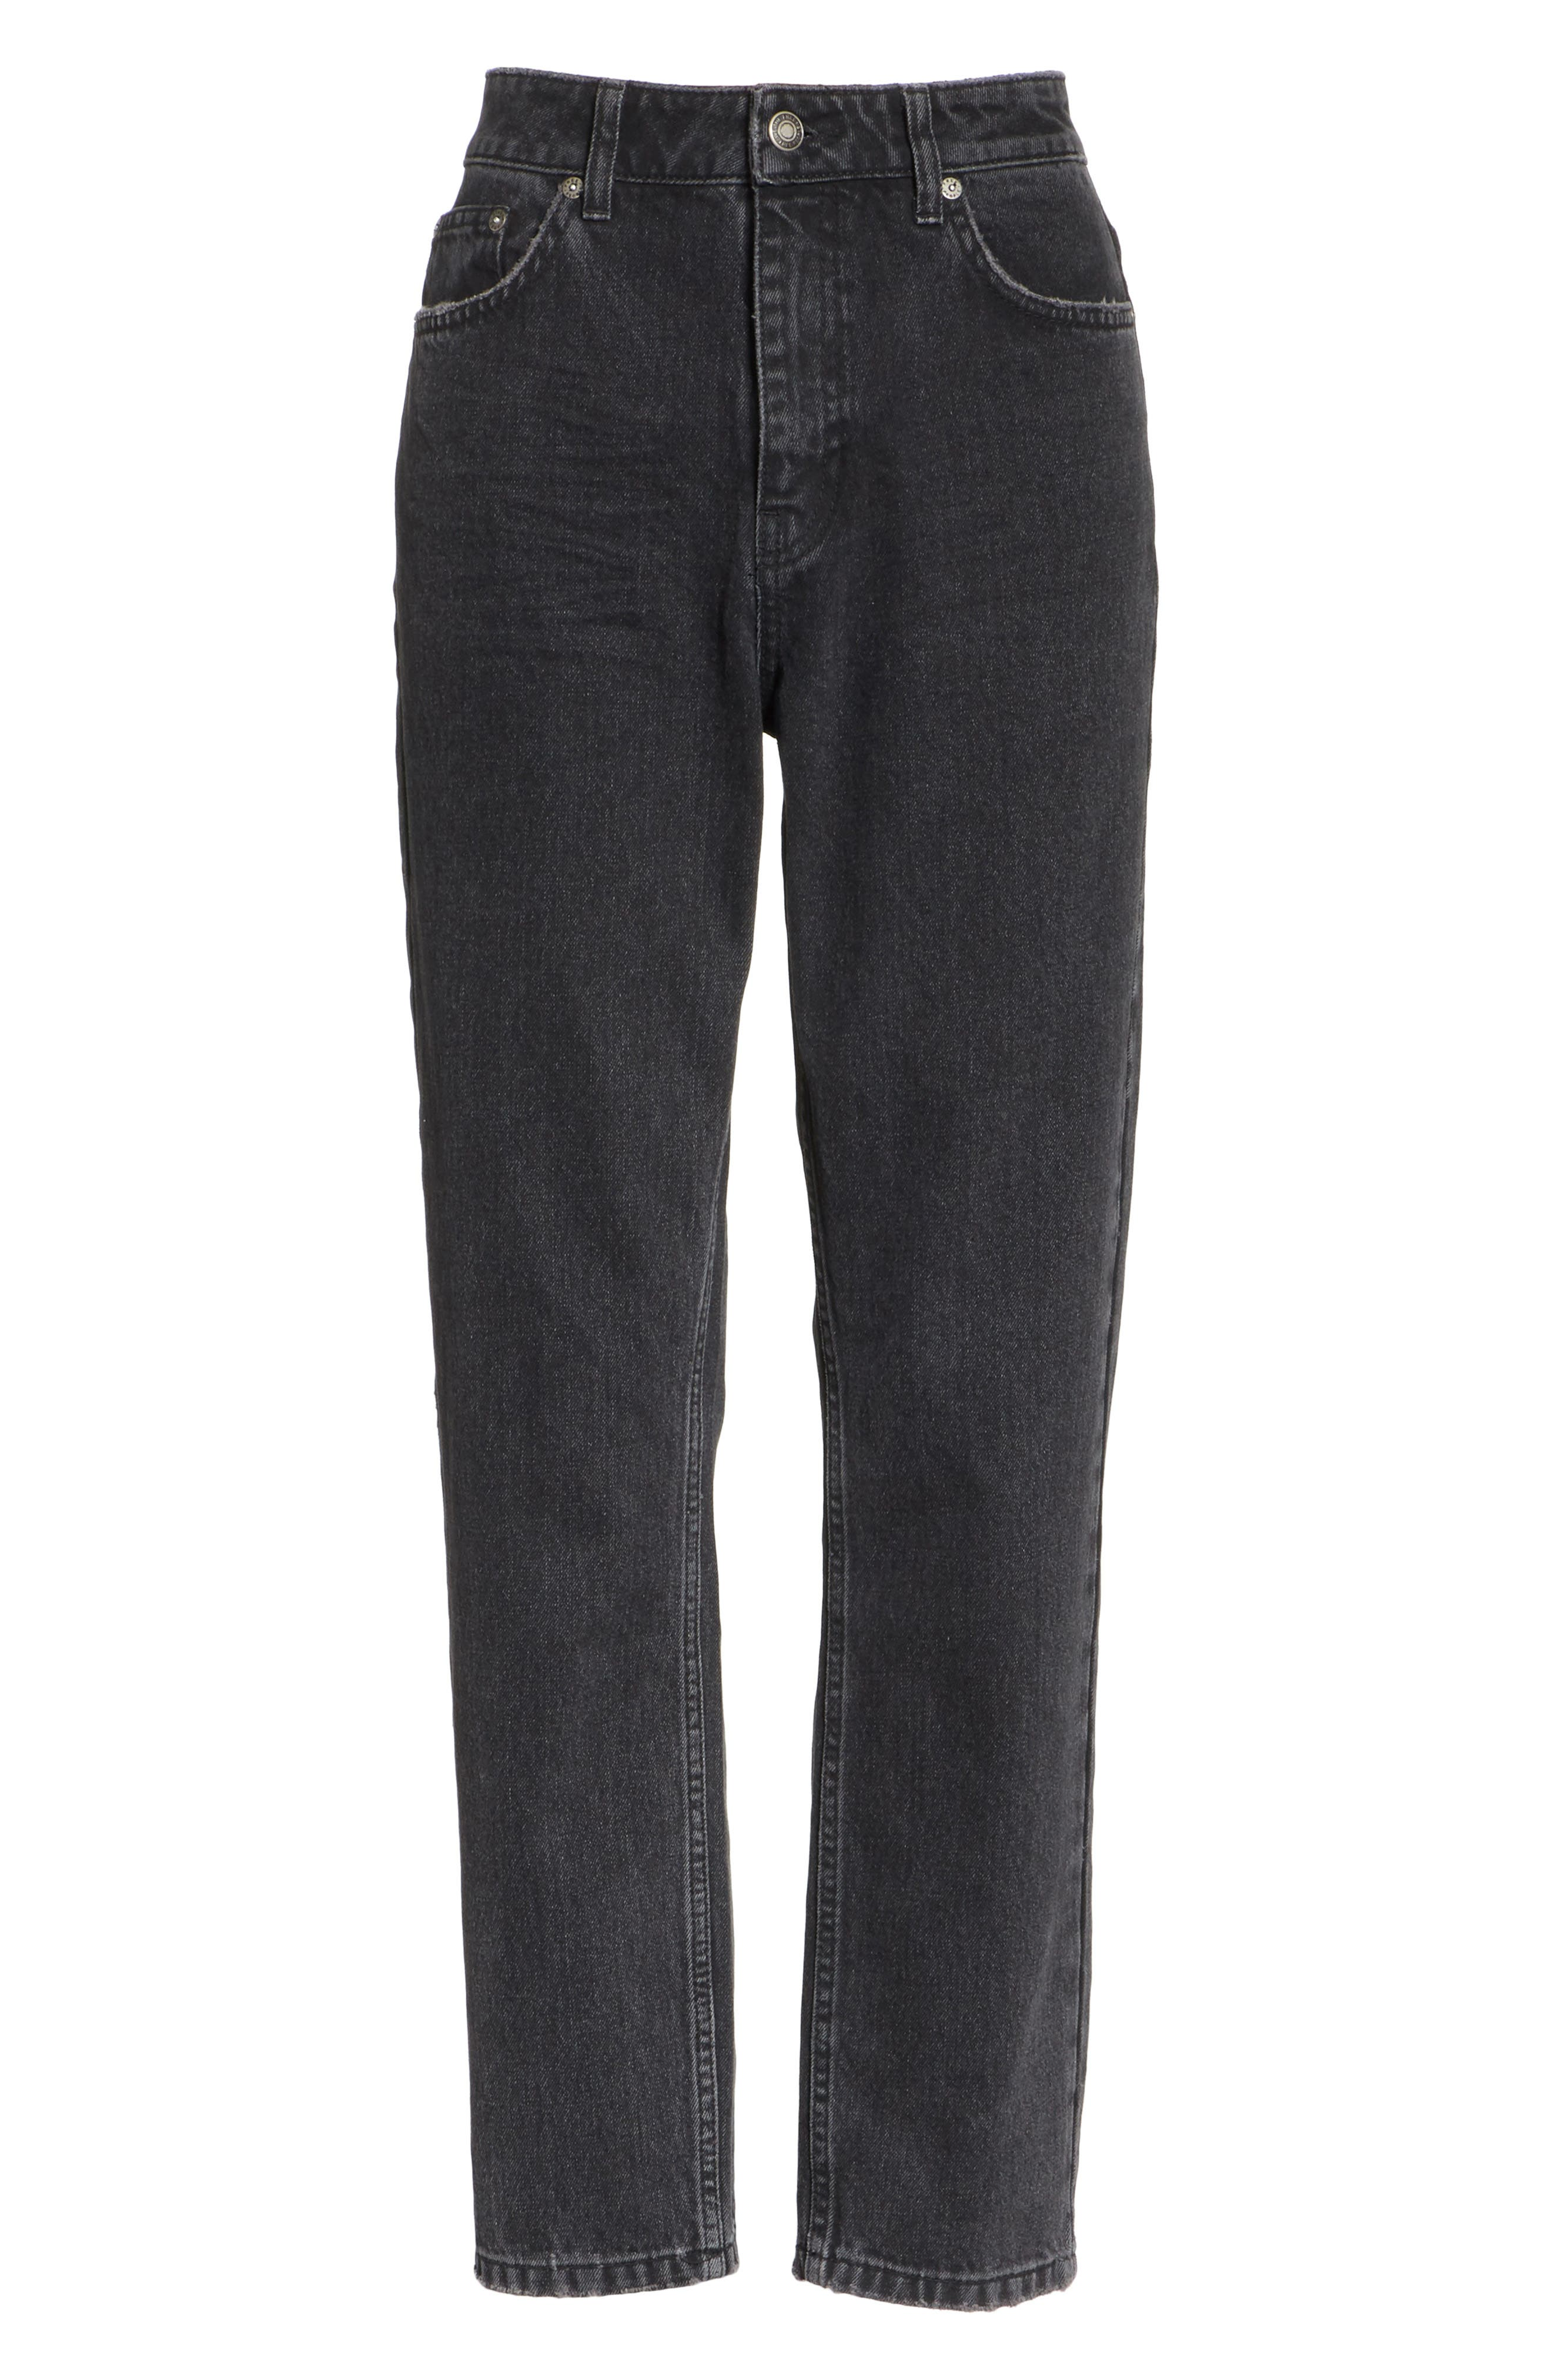 FREE PEOPLE, We the Free by Free People Mom Jeans, Alternate thumbnail 7, color, 001